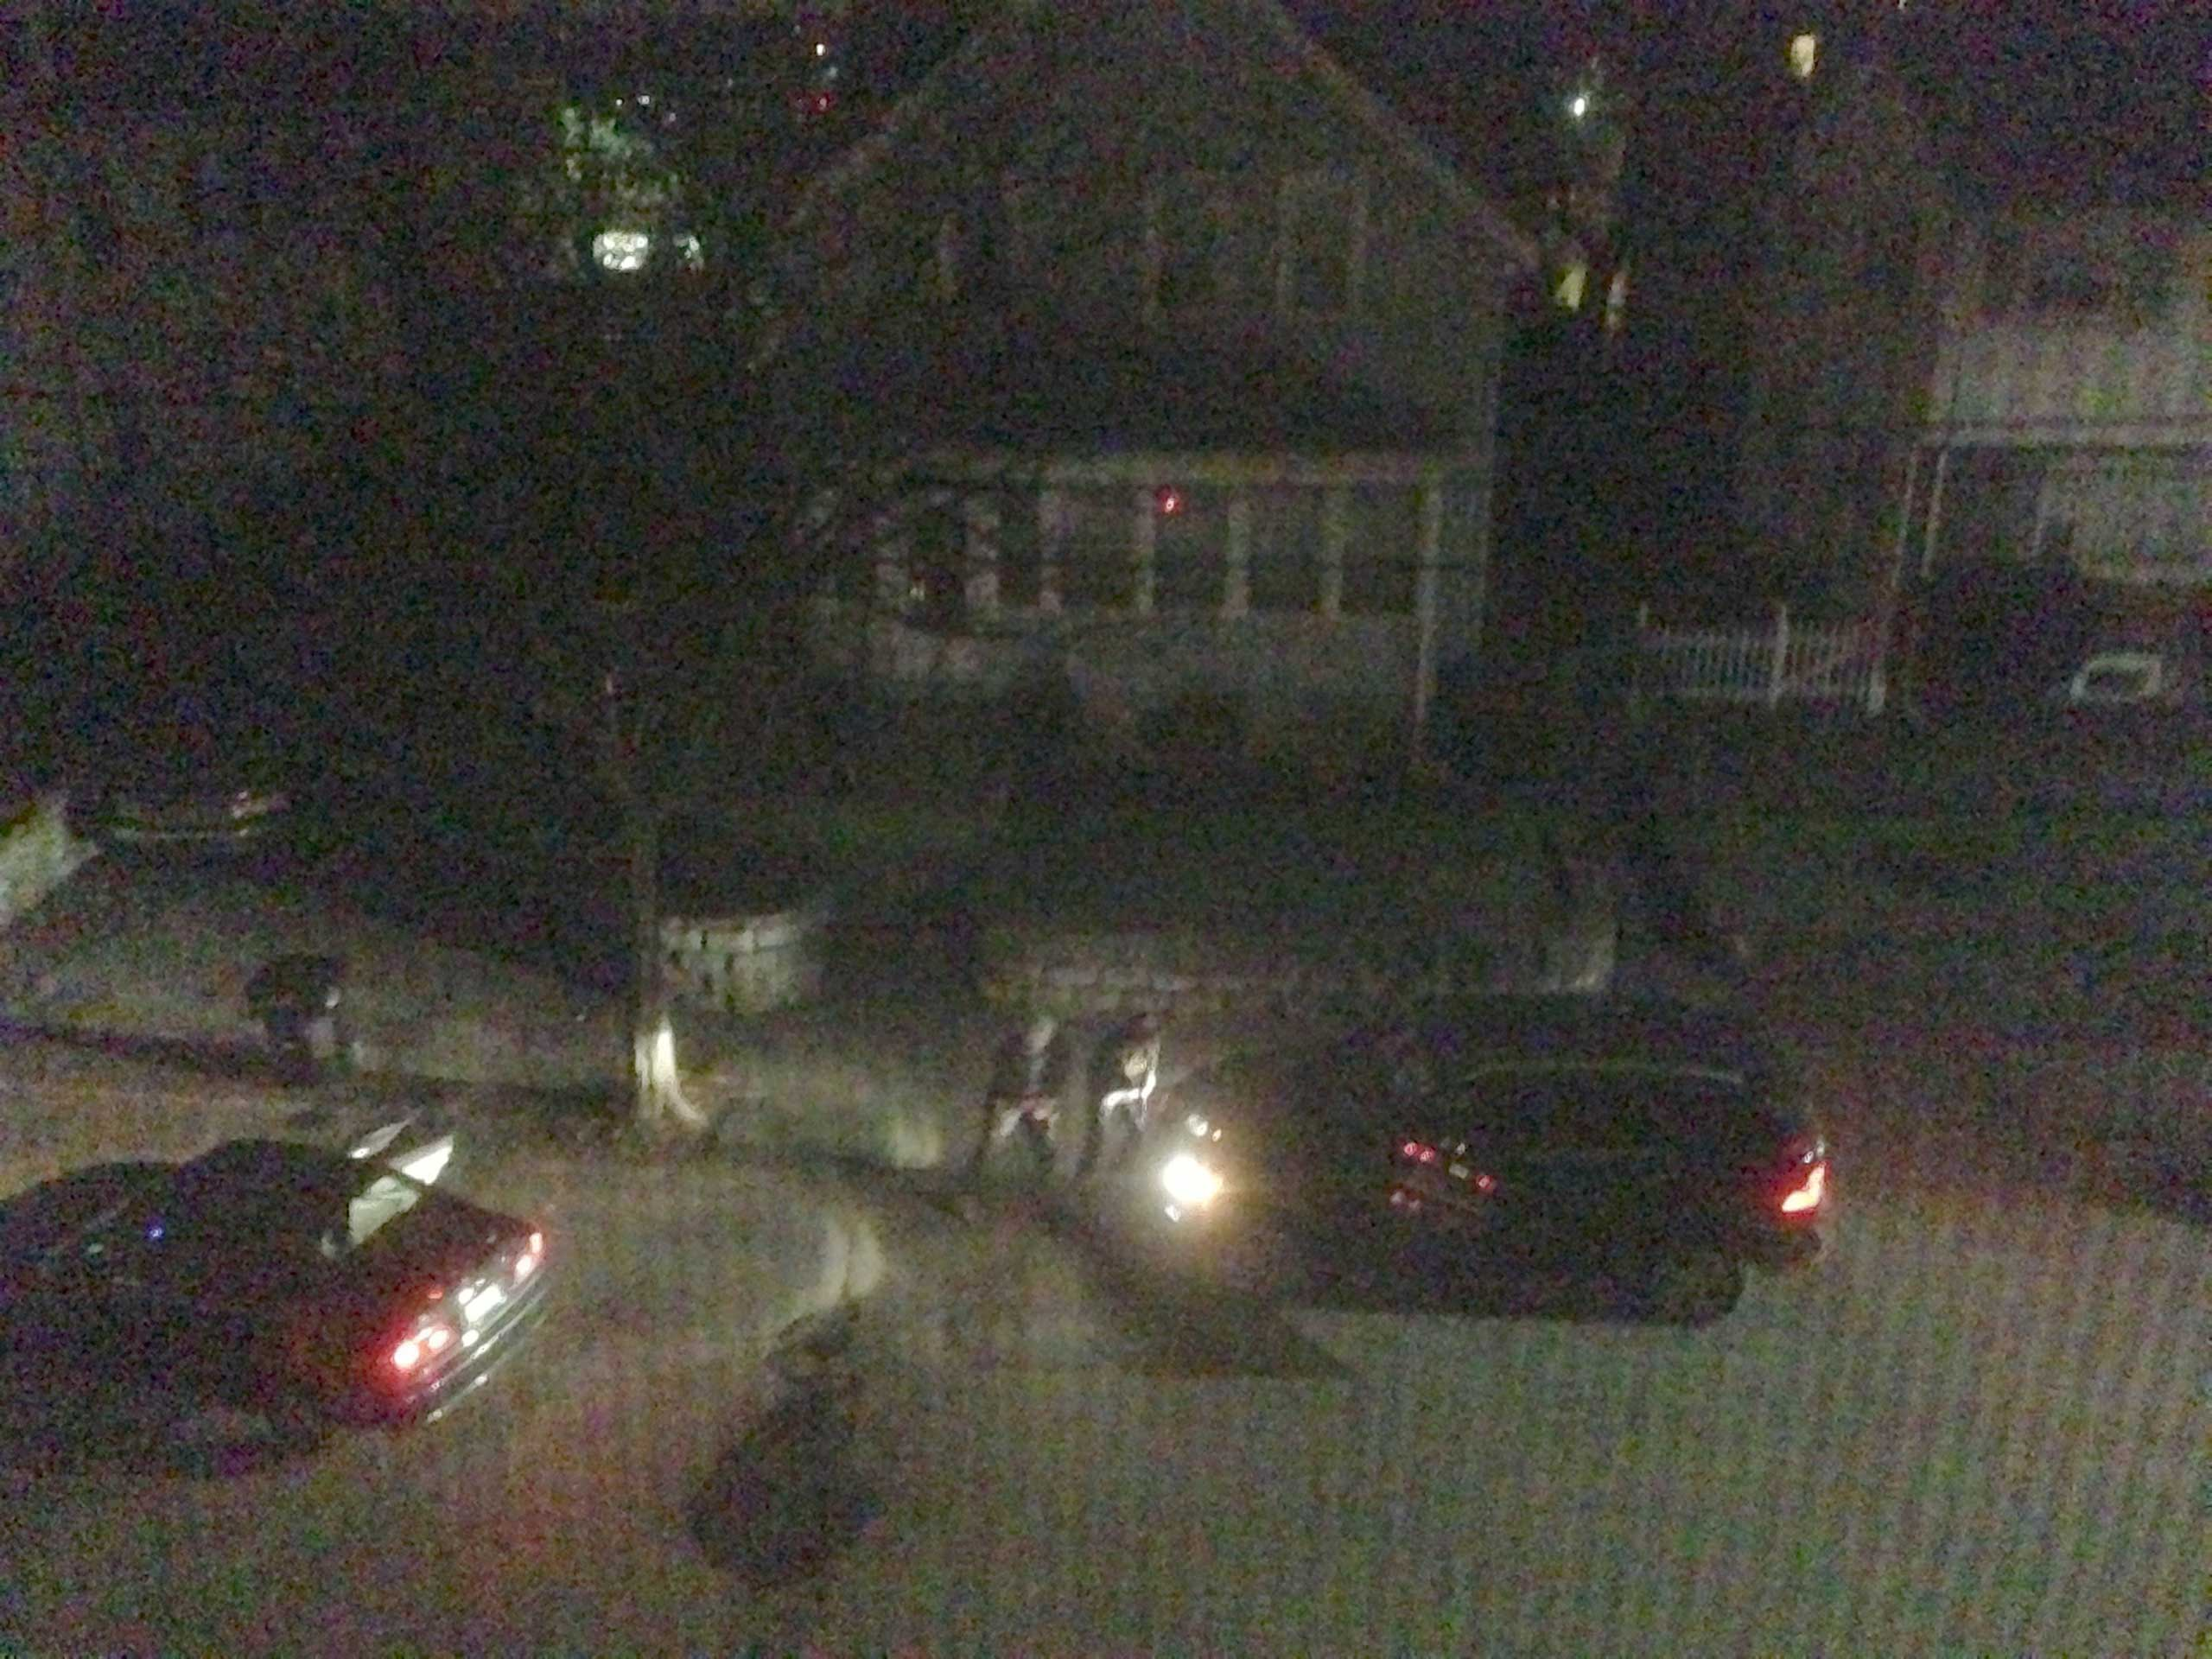 This still image captured from video shows brothers Tamerlan and Dzhokhar Tsarnaev crouched behind a car during their April 2013 shootout with police.